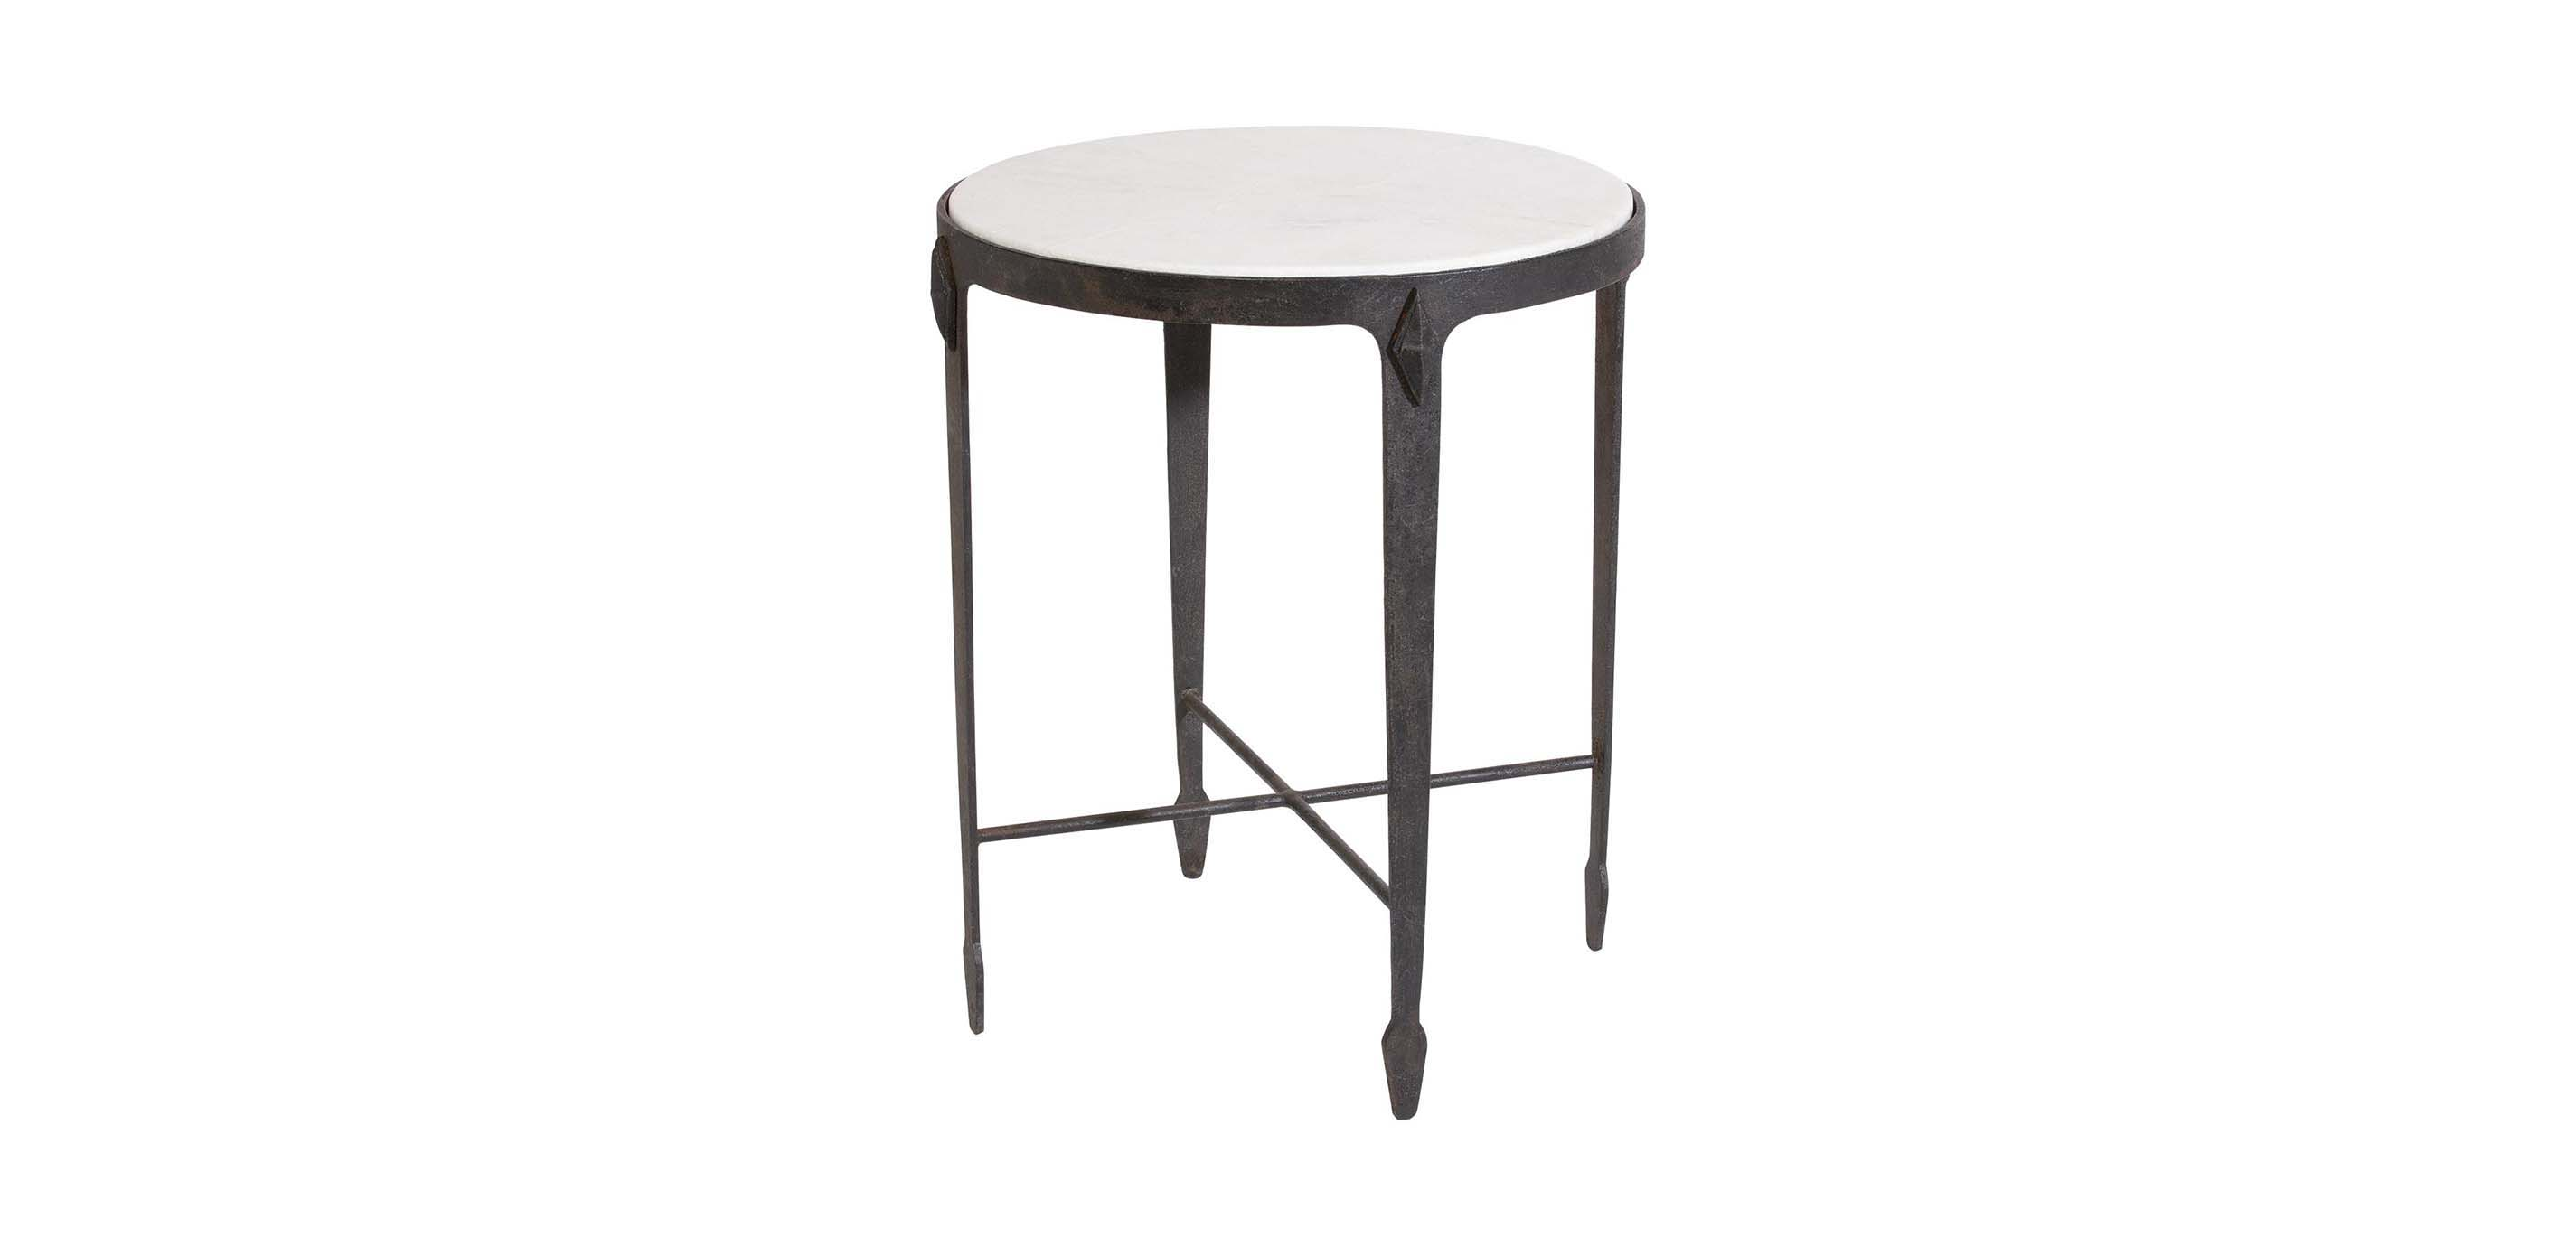 Jaca marble top accent table accent tables ethan allen for Html table th always on top